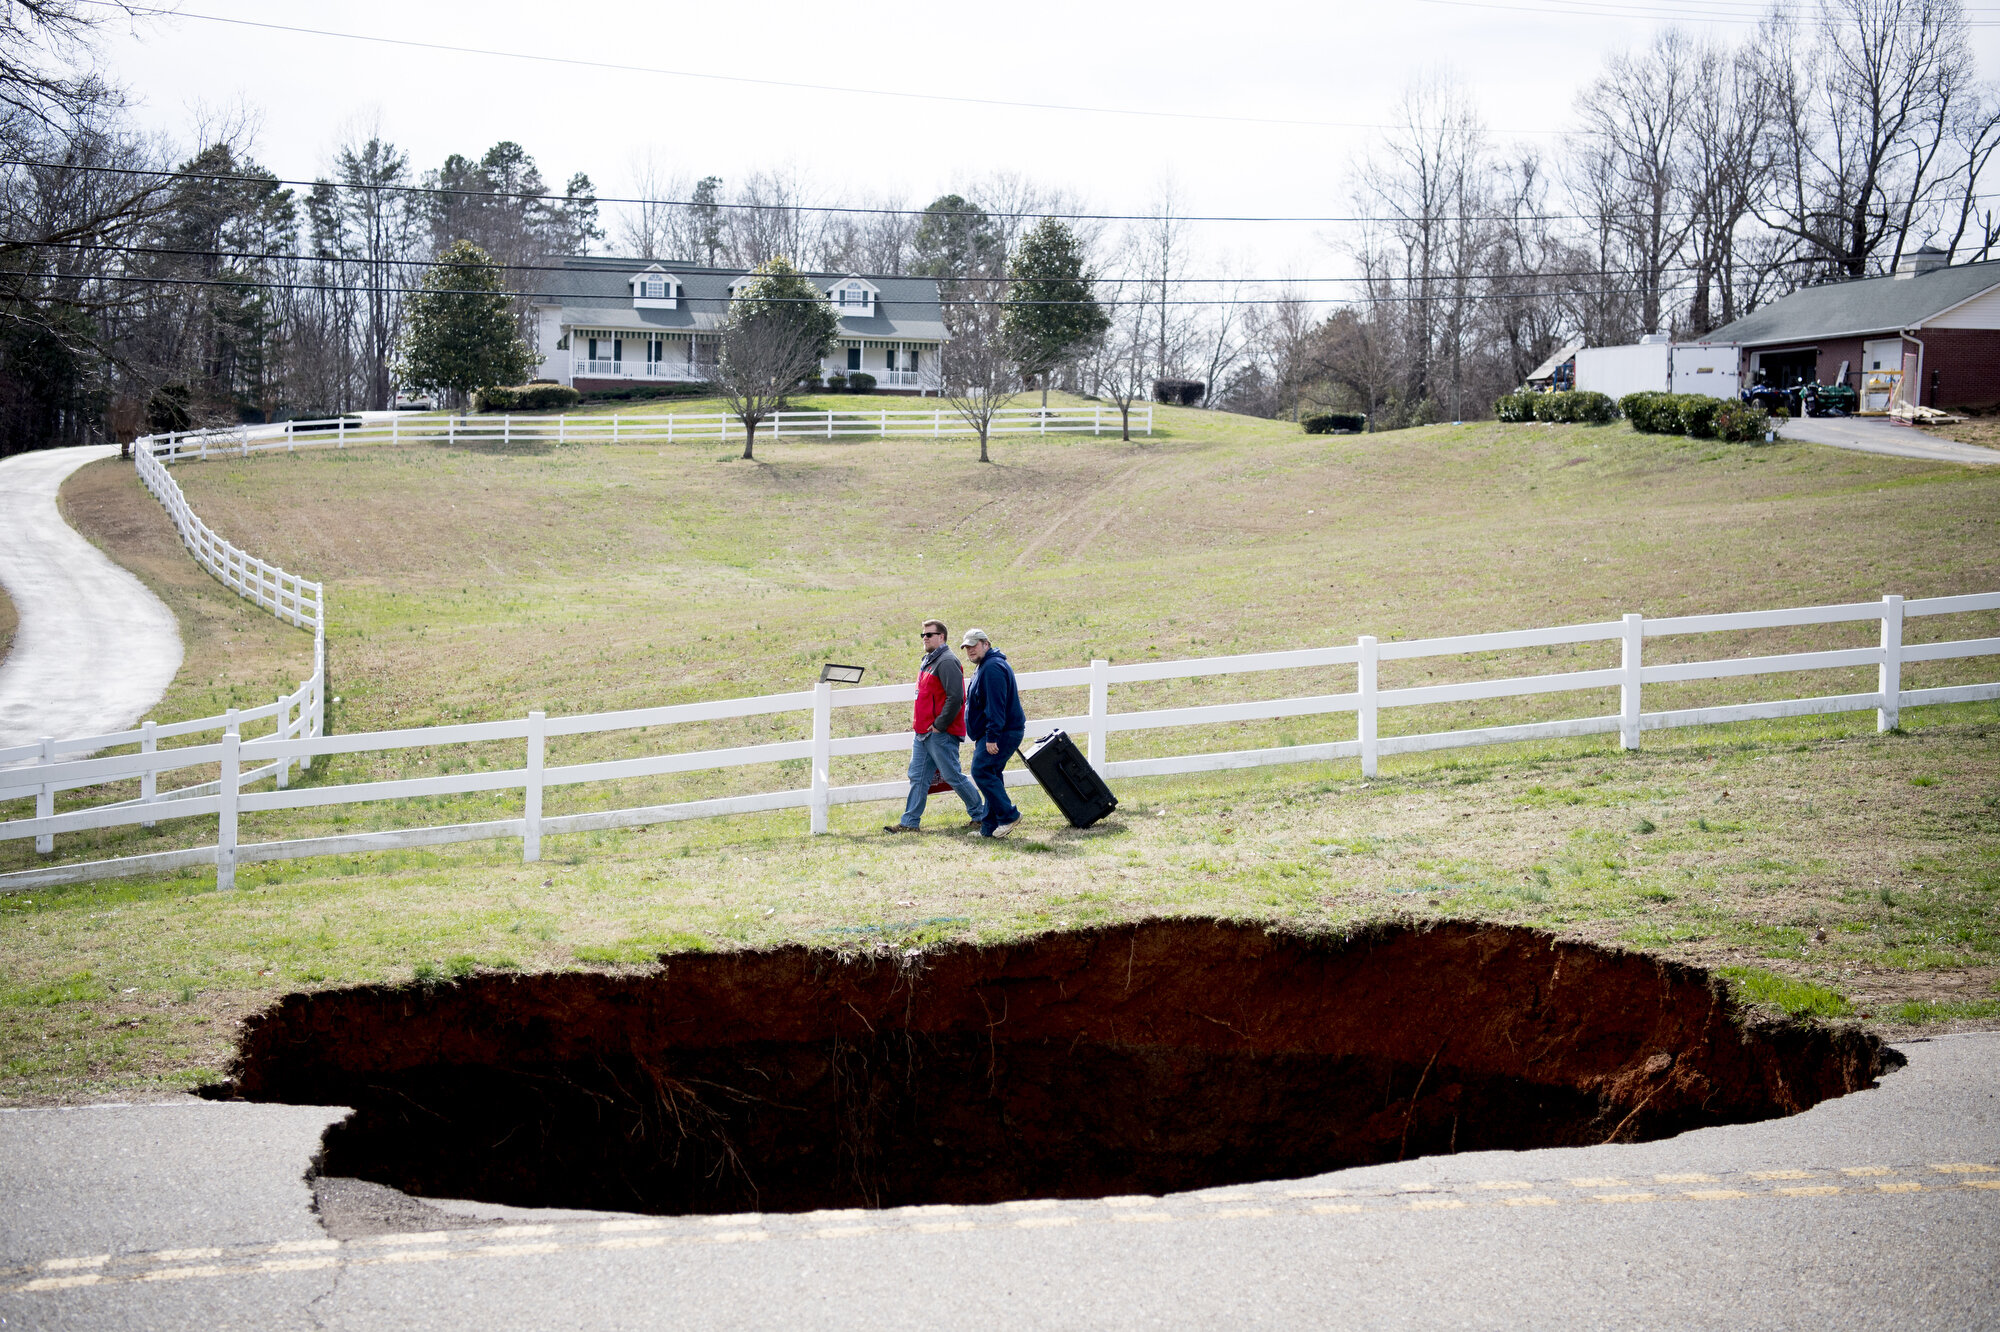 People walk past a large sinkhole on Greenwell Road in Powell, Tennessee. The sinkhole is estimated to be around 20 feet deep.